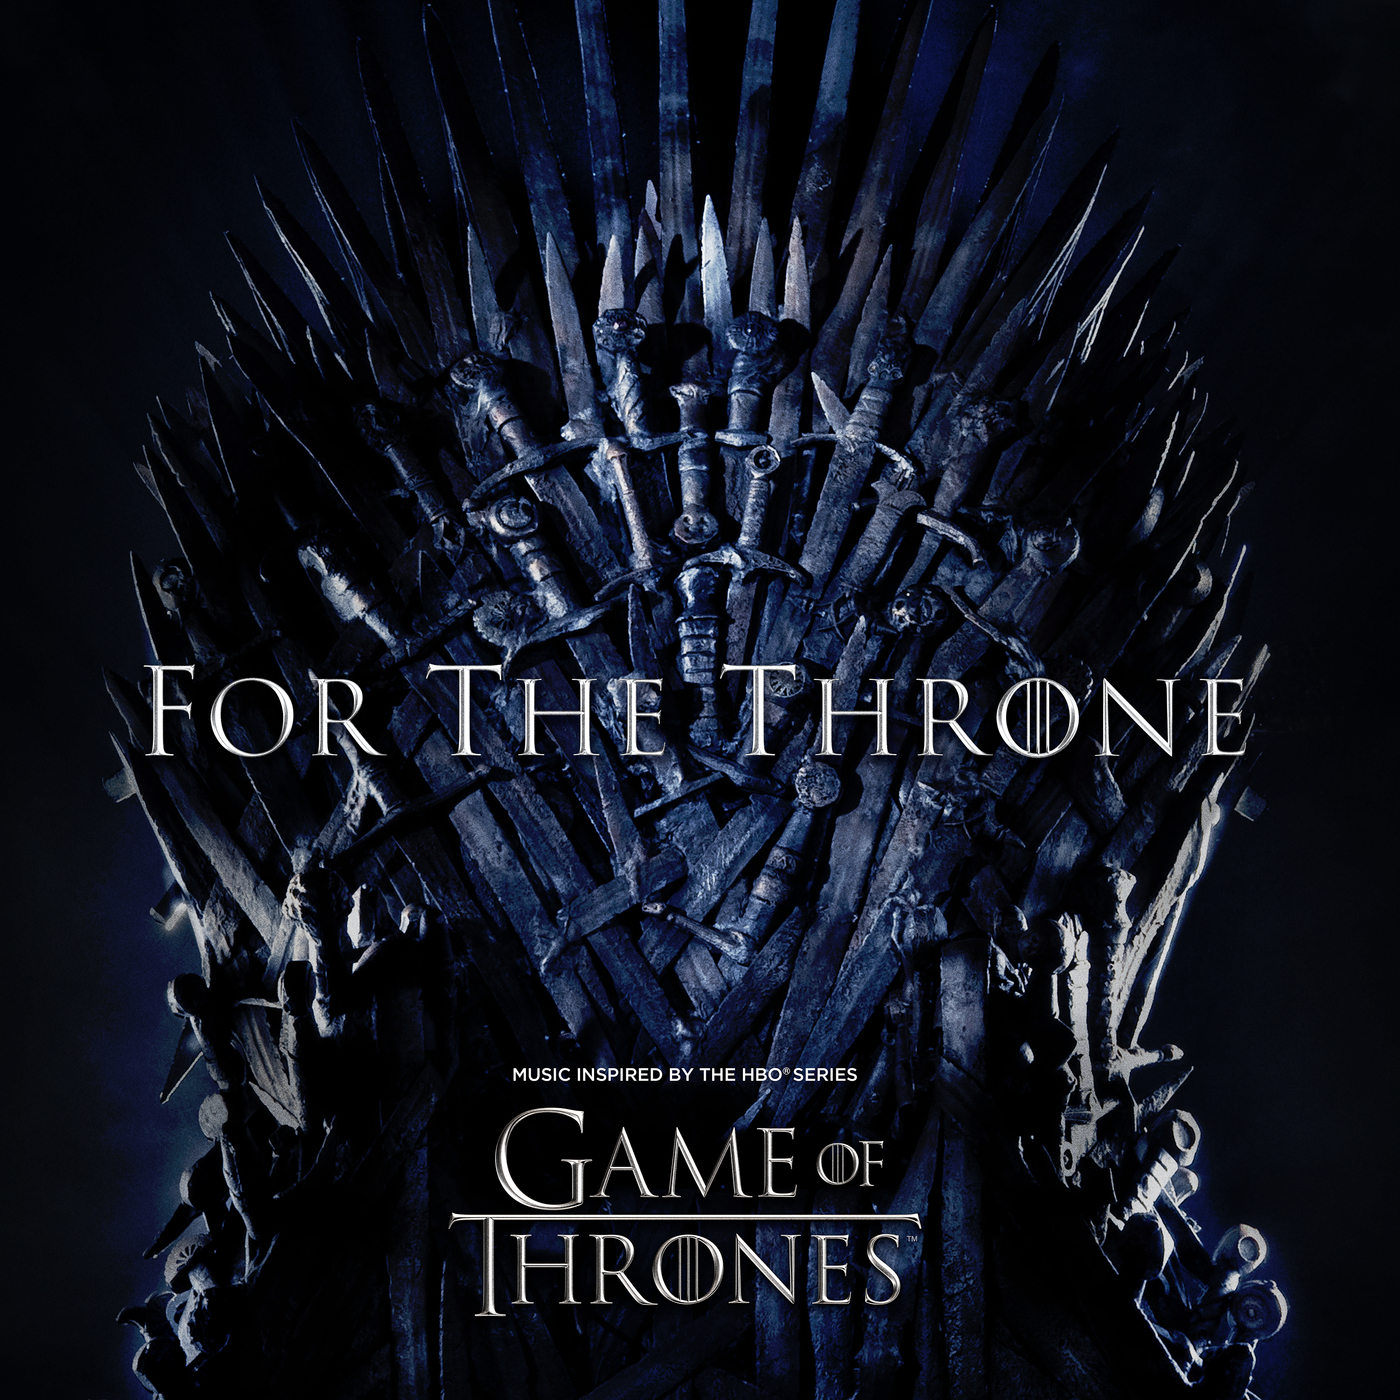 Kingdom of One (from For The Throne (Music Inspired by the HBO Series Game of Thrones)) - Maren Morris